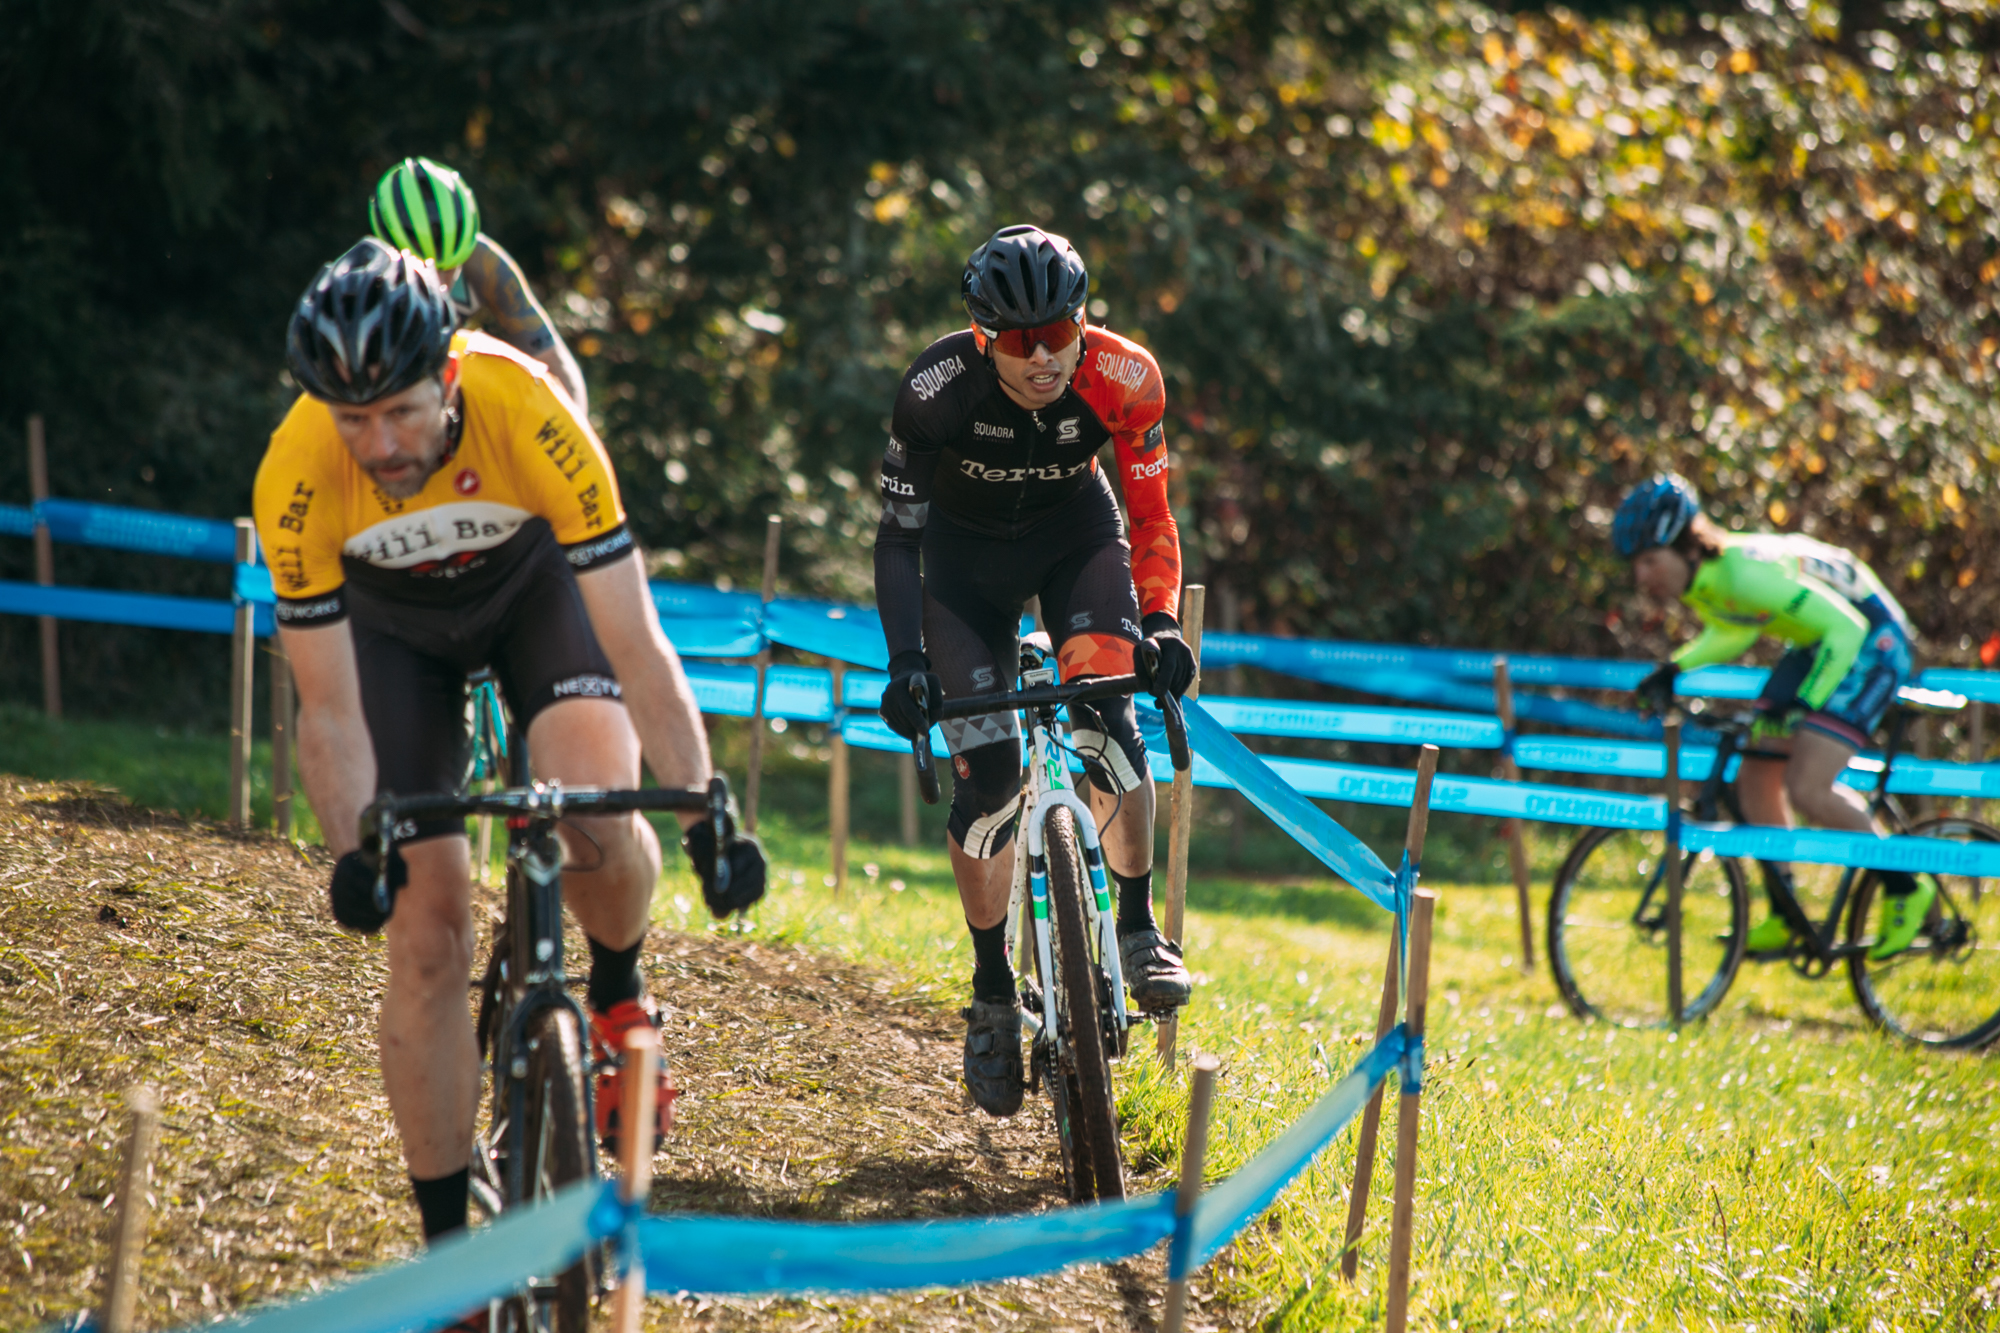 Cyclocross18_CCCX_RainierHS-87-mettlecycling.jpg